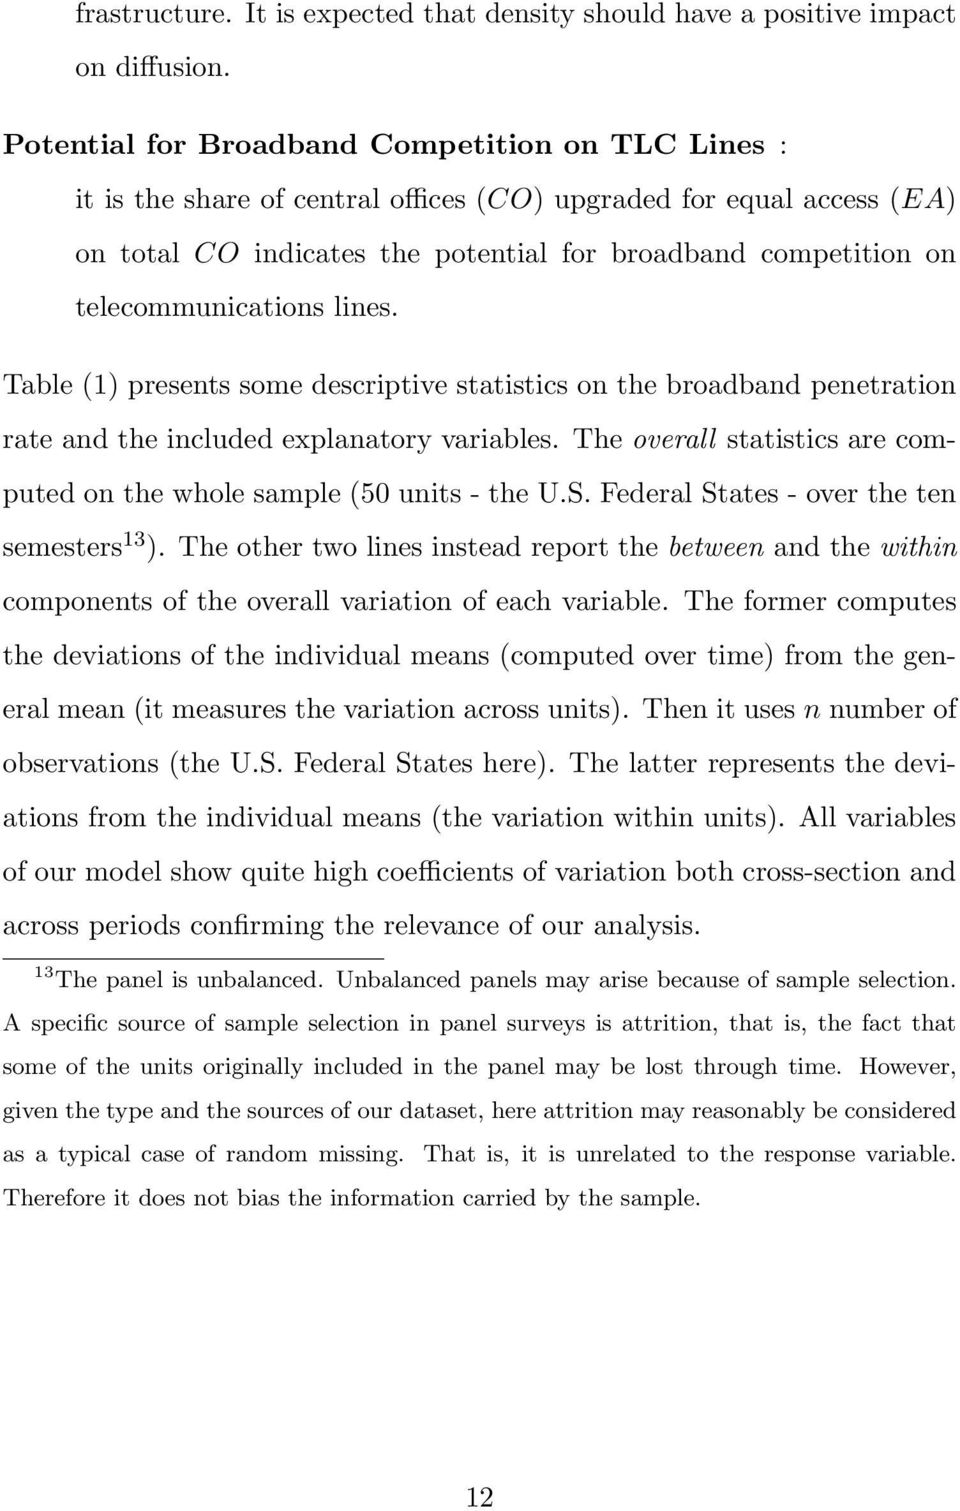 telecommunications lines. Table (1) presents some descriptive statistics on the broadband penetration rate and the included explanatory variables.